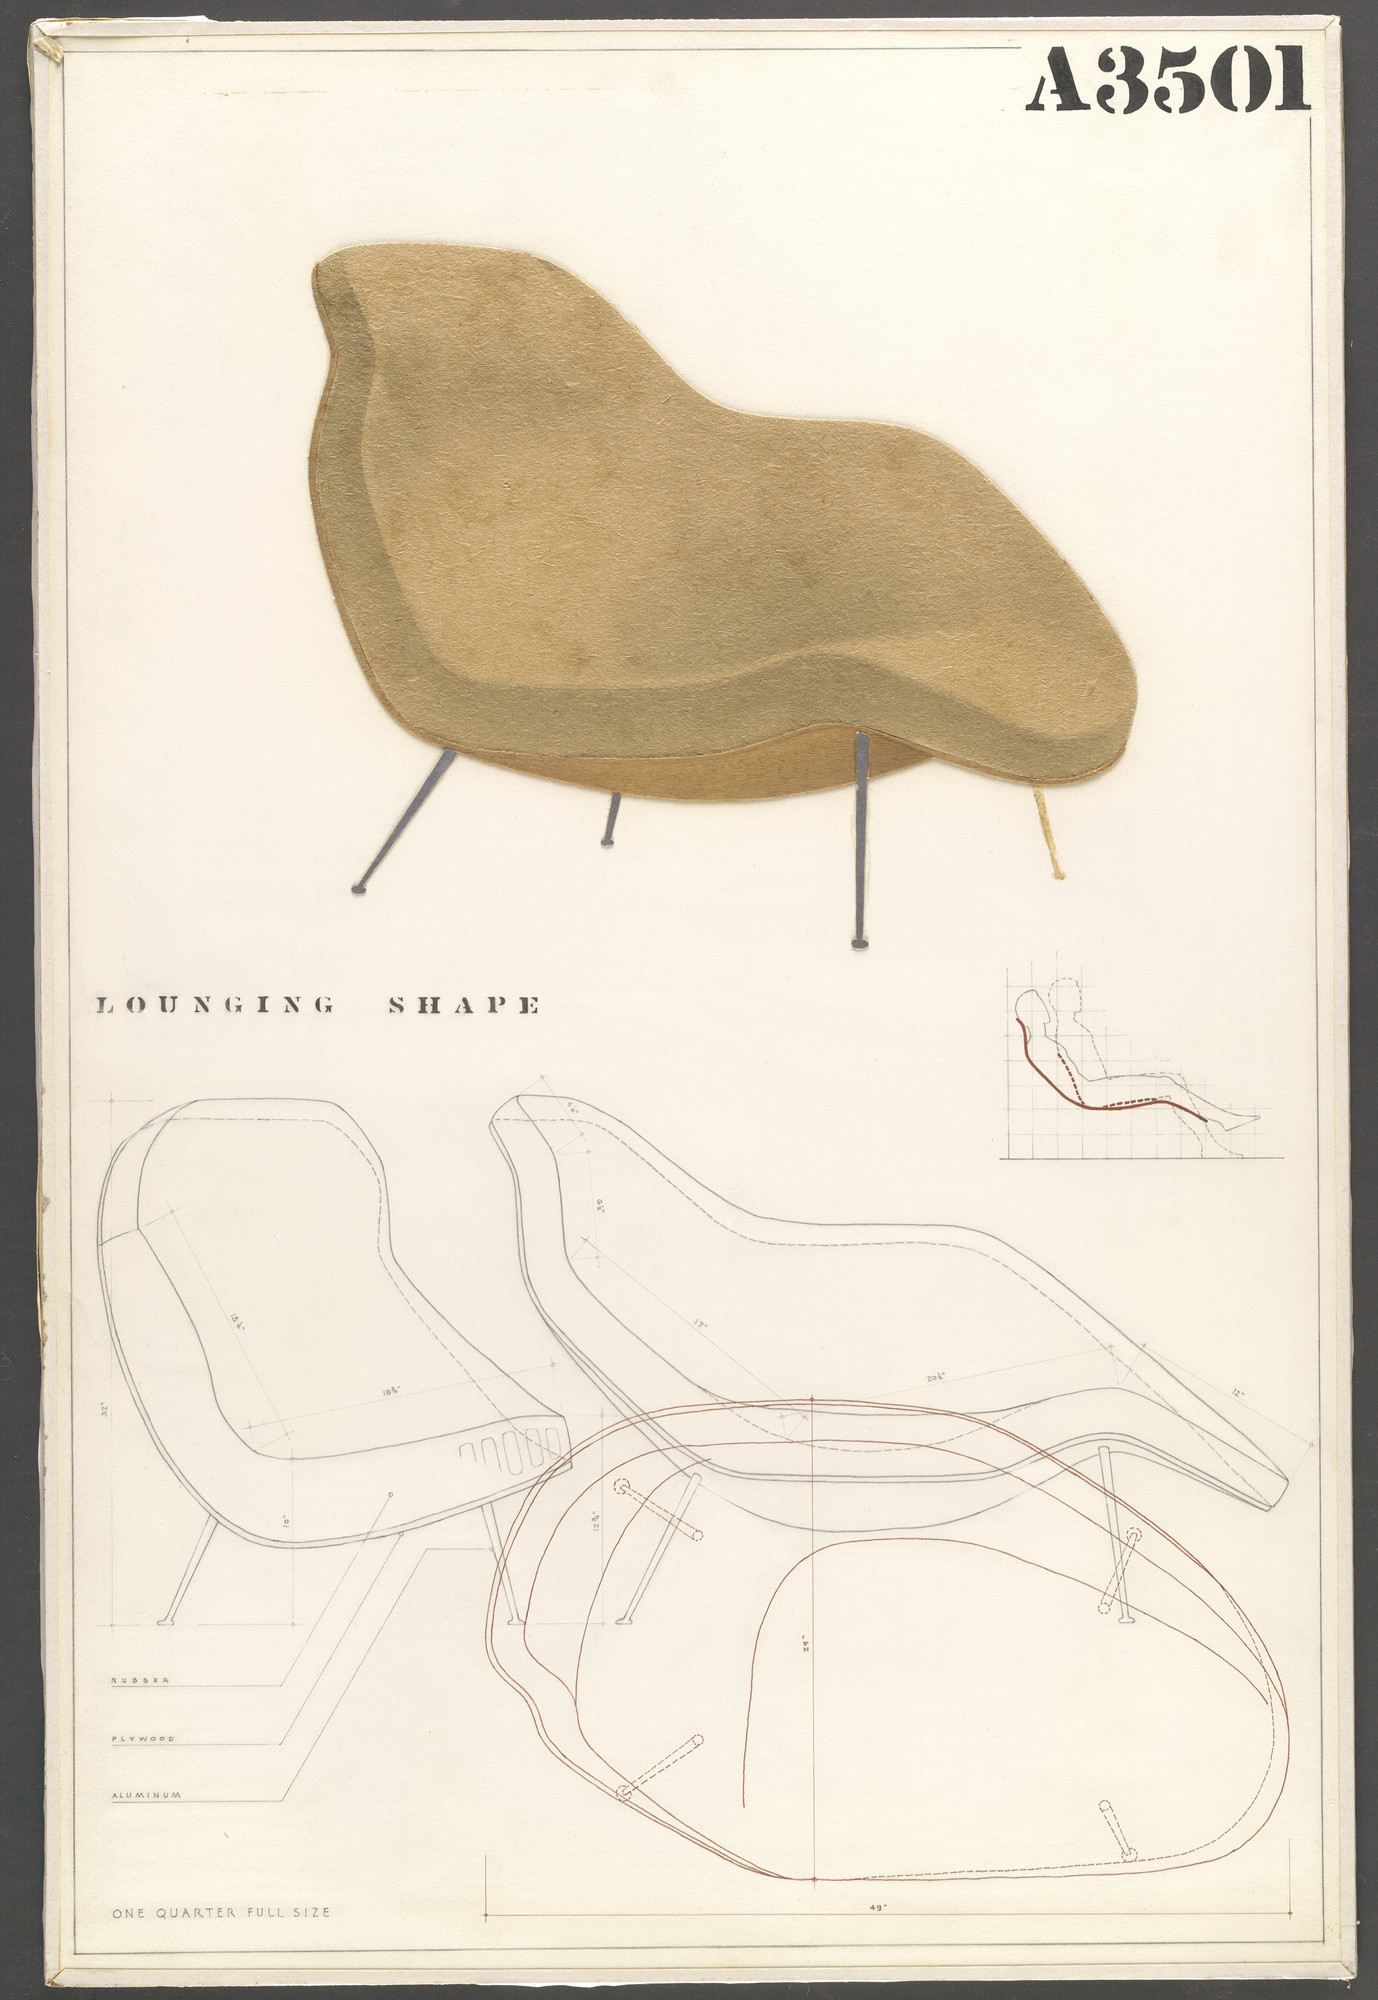 Charles Eames, Eero Saarinen. Lounge Chair (Entry Panel for MoMA Competition for Organic Design in Home Furnishings). 1940